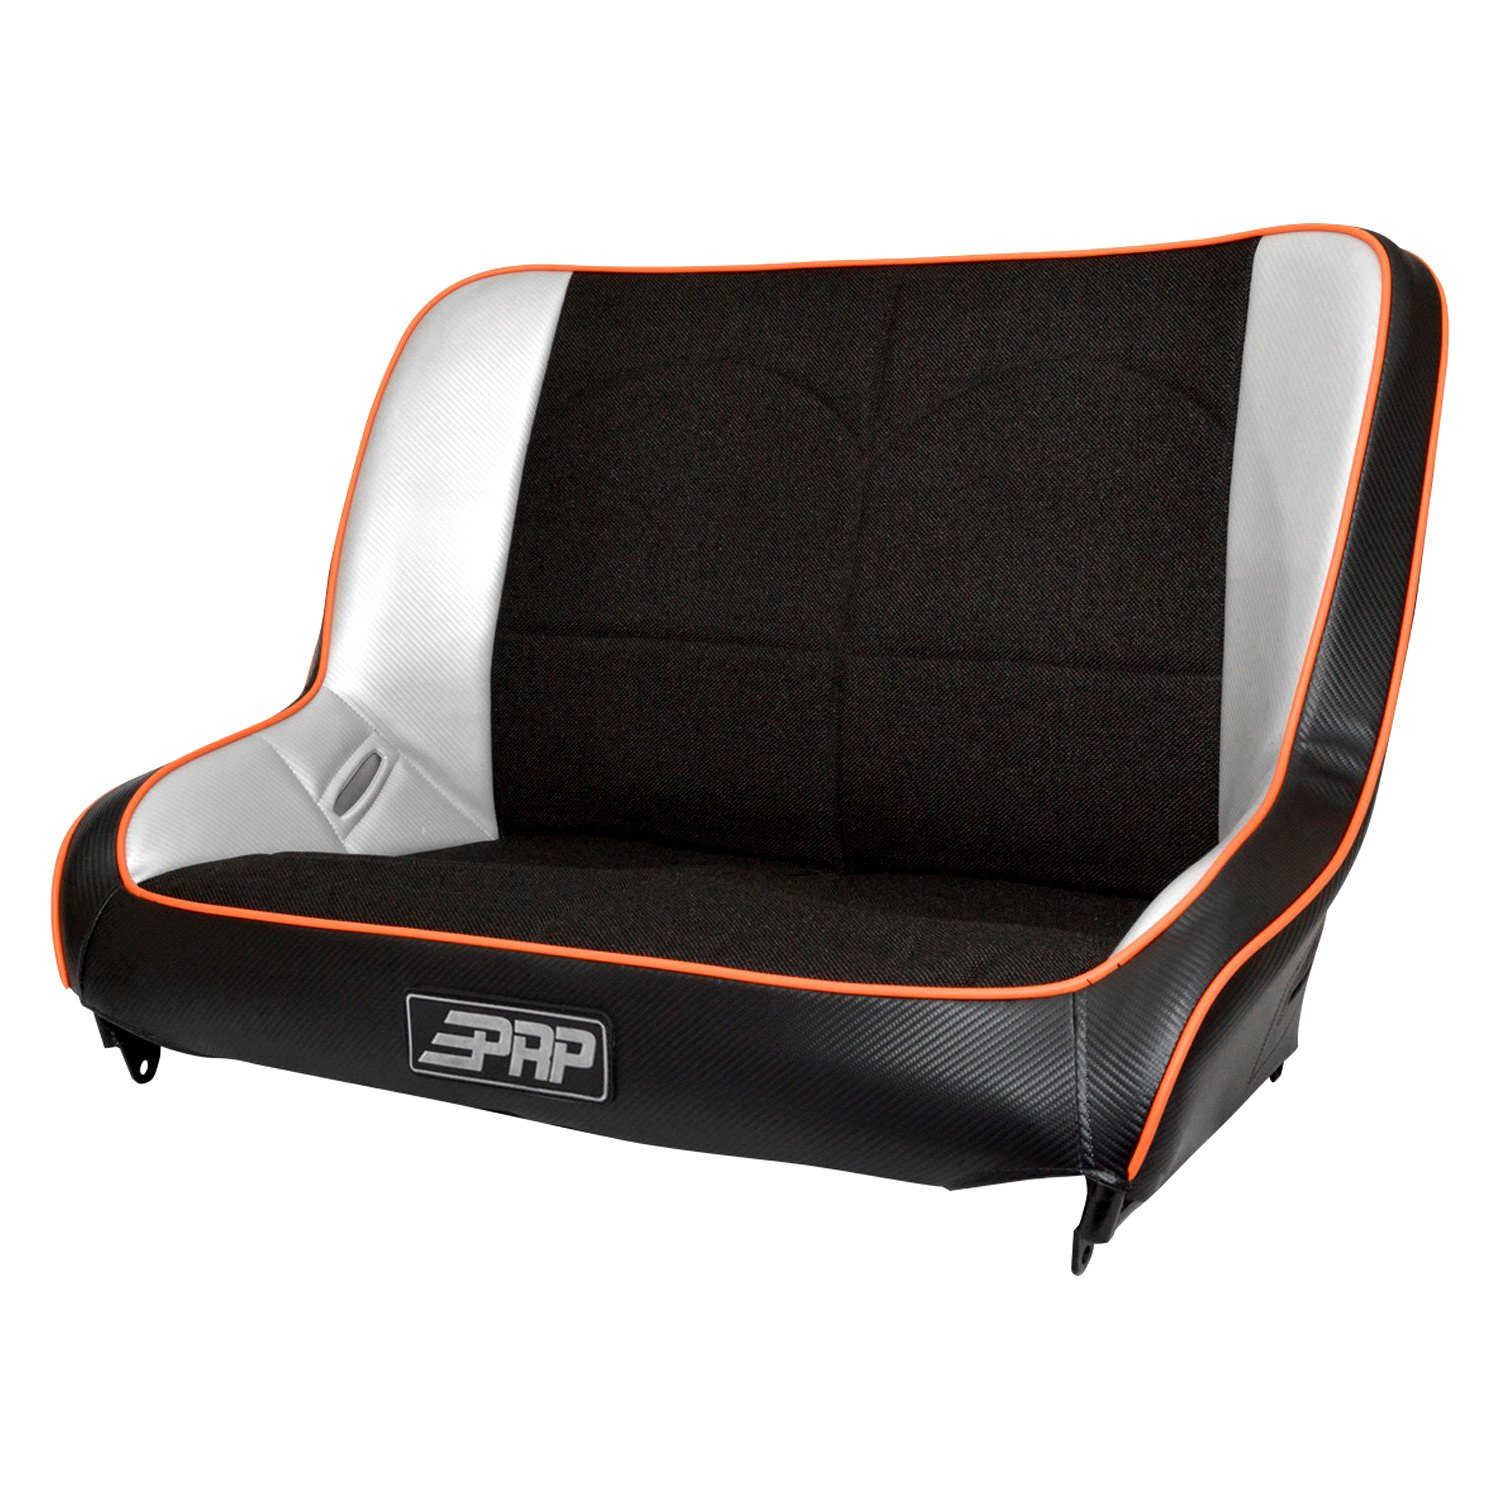 Superb img of PRP Seats® Front Bench Seat with #B74814 color and 1500x1500 pixels